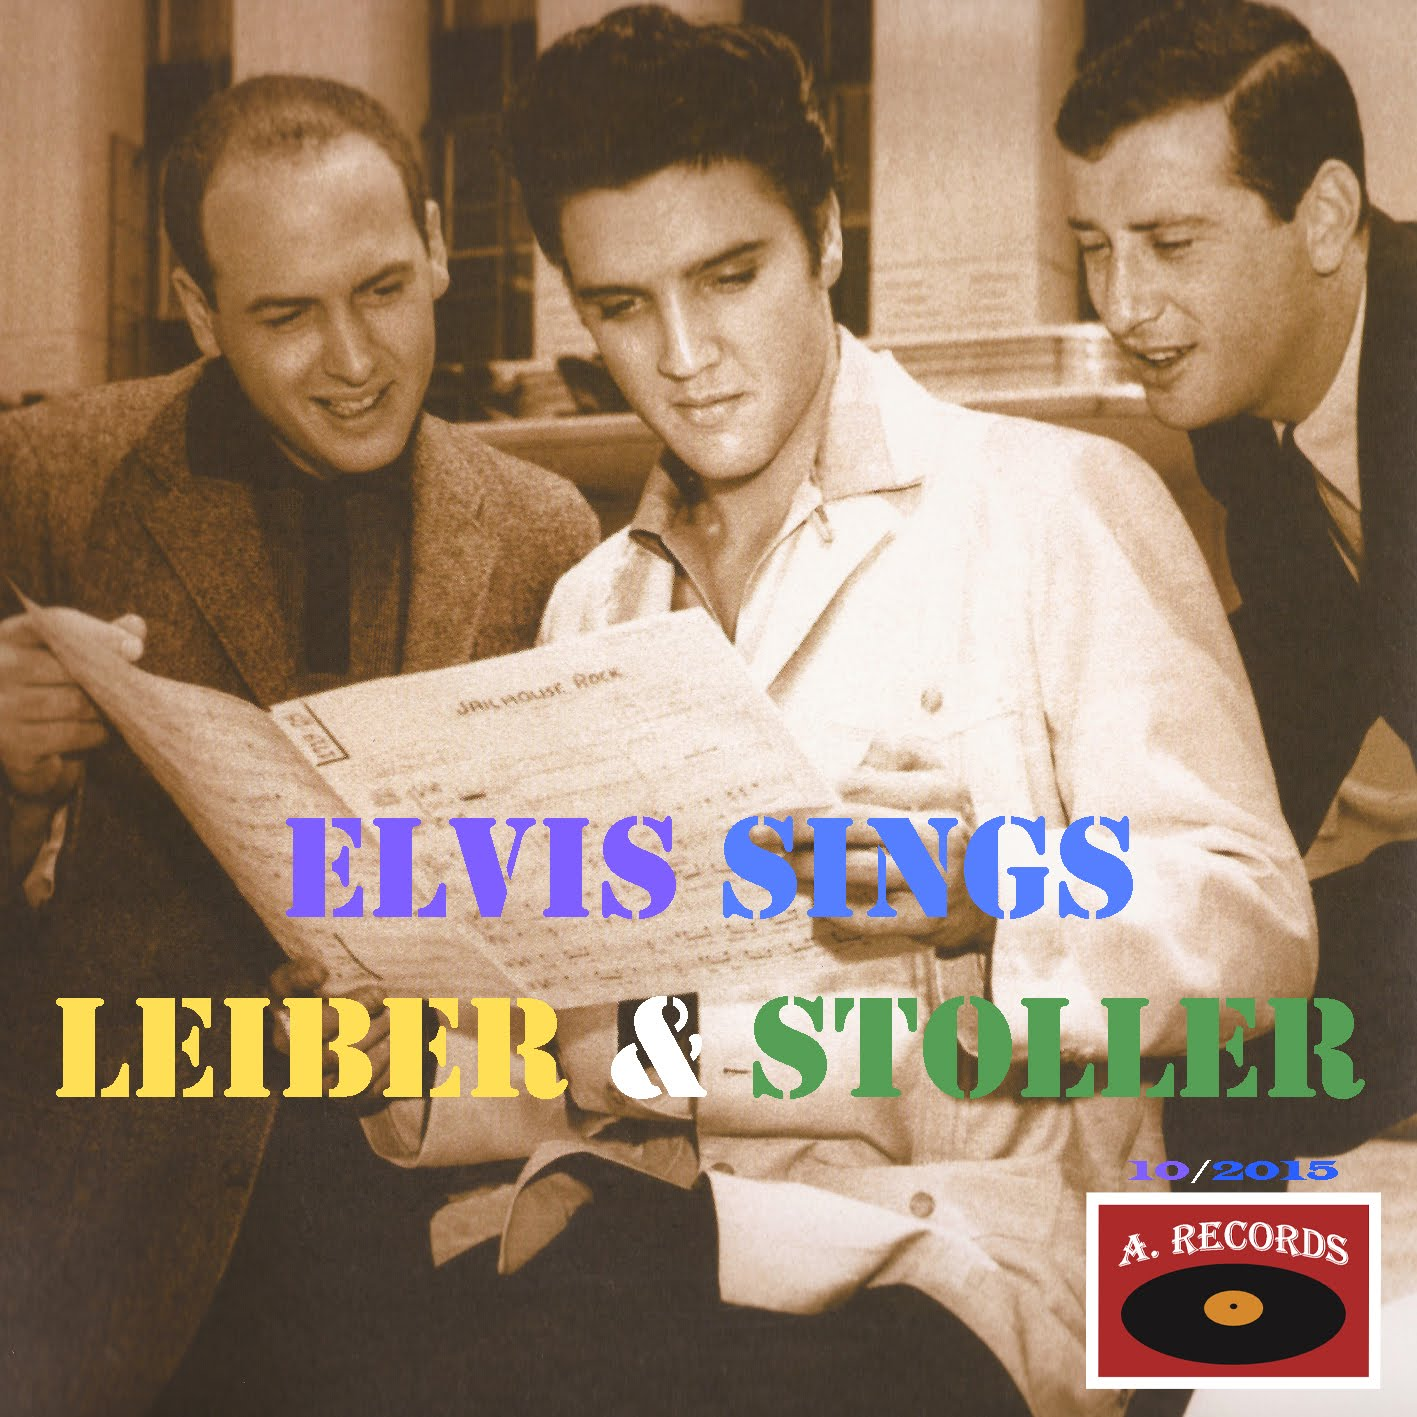 Elvis Sings Leiber & Stoller (October 2015)